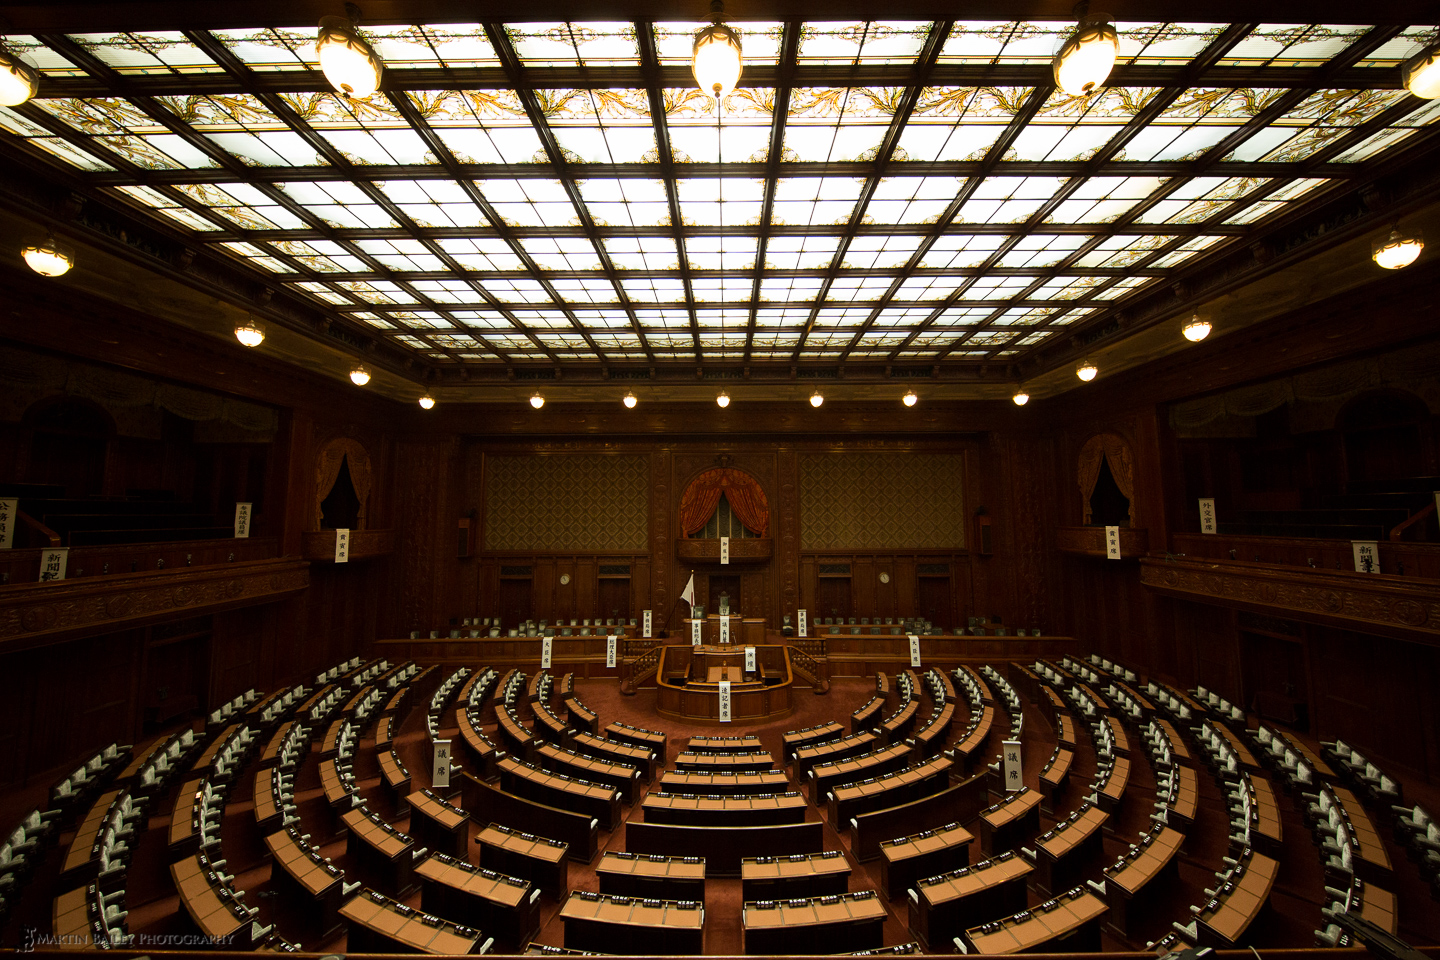 The Japan House of Representatives Diet building